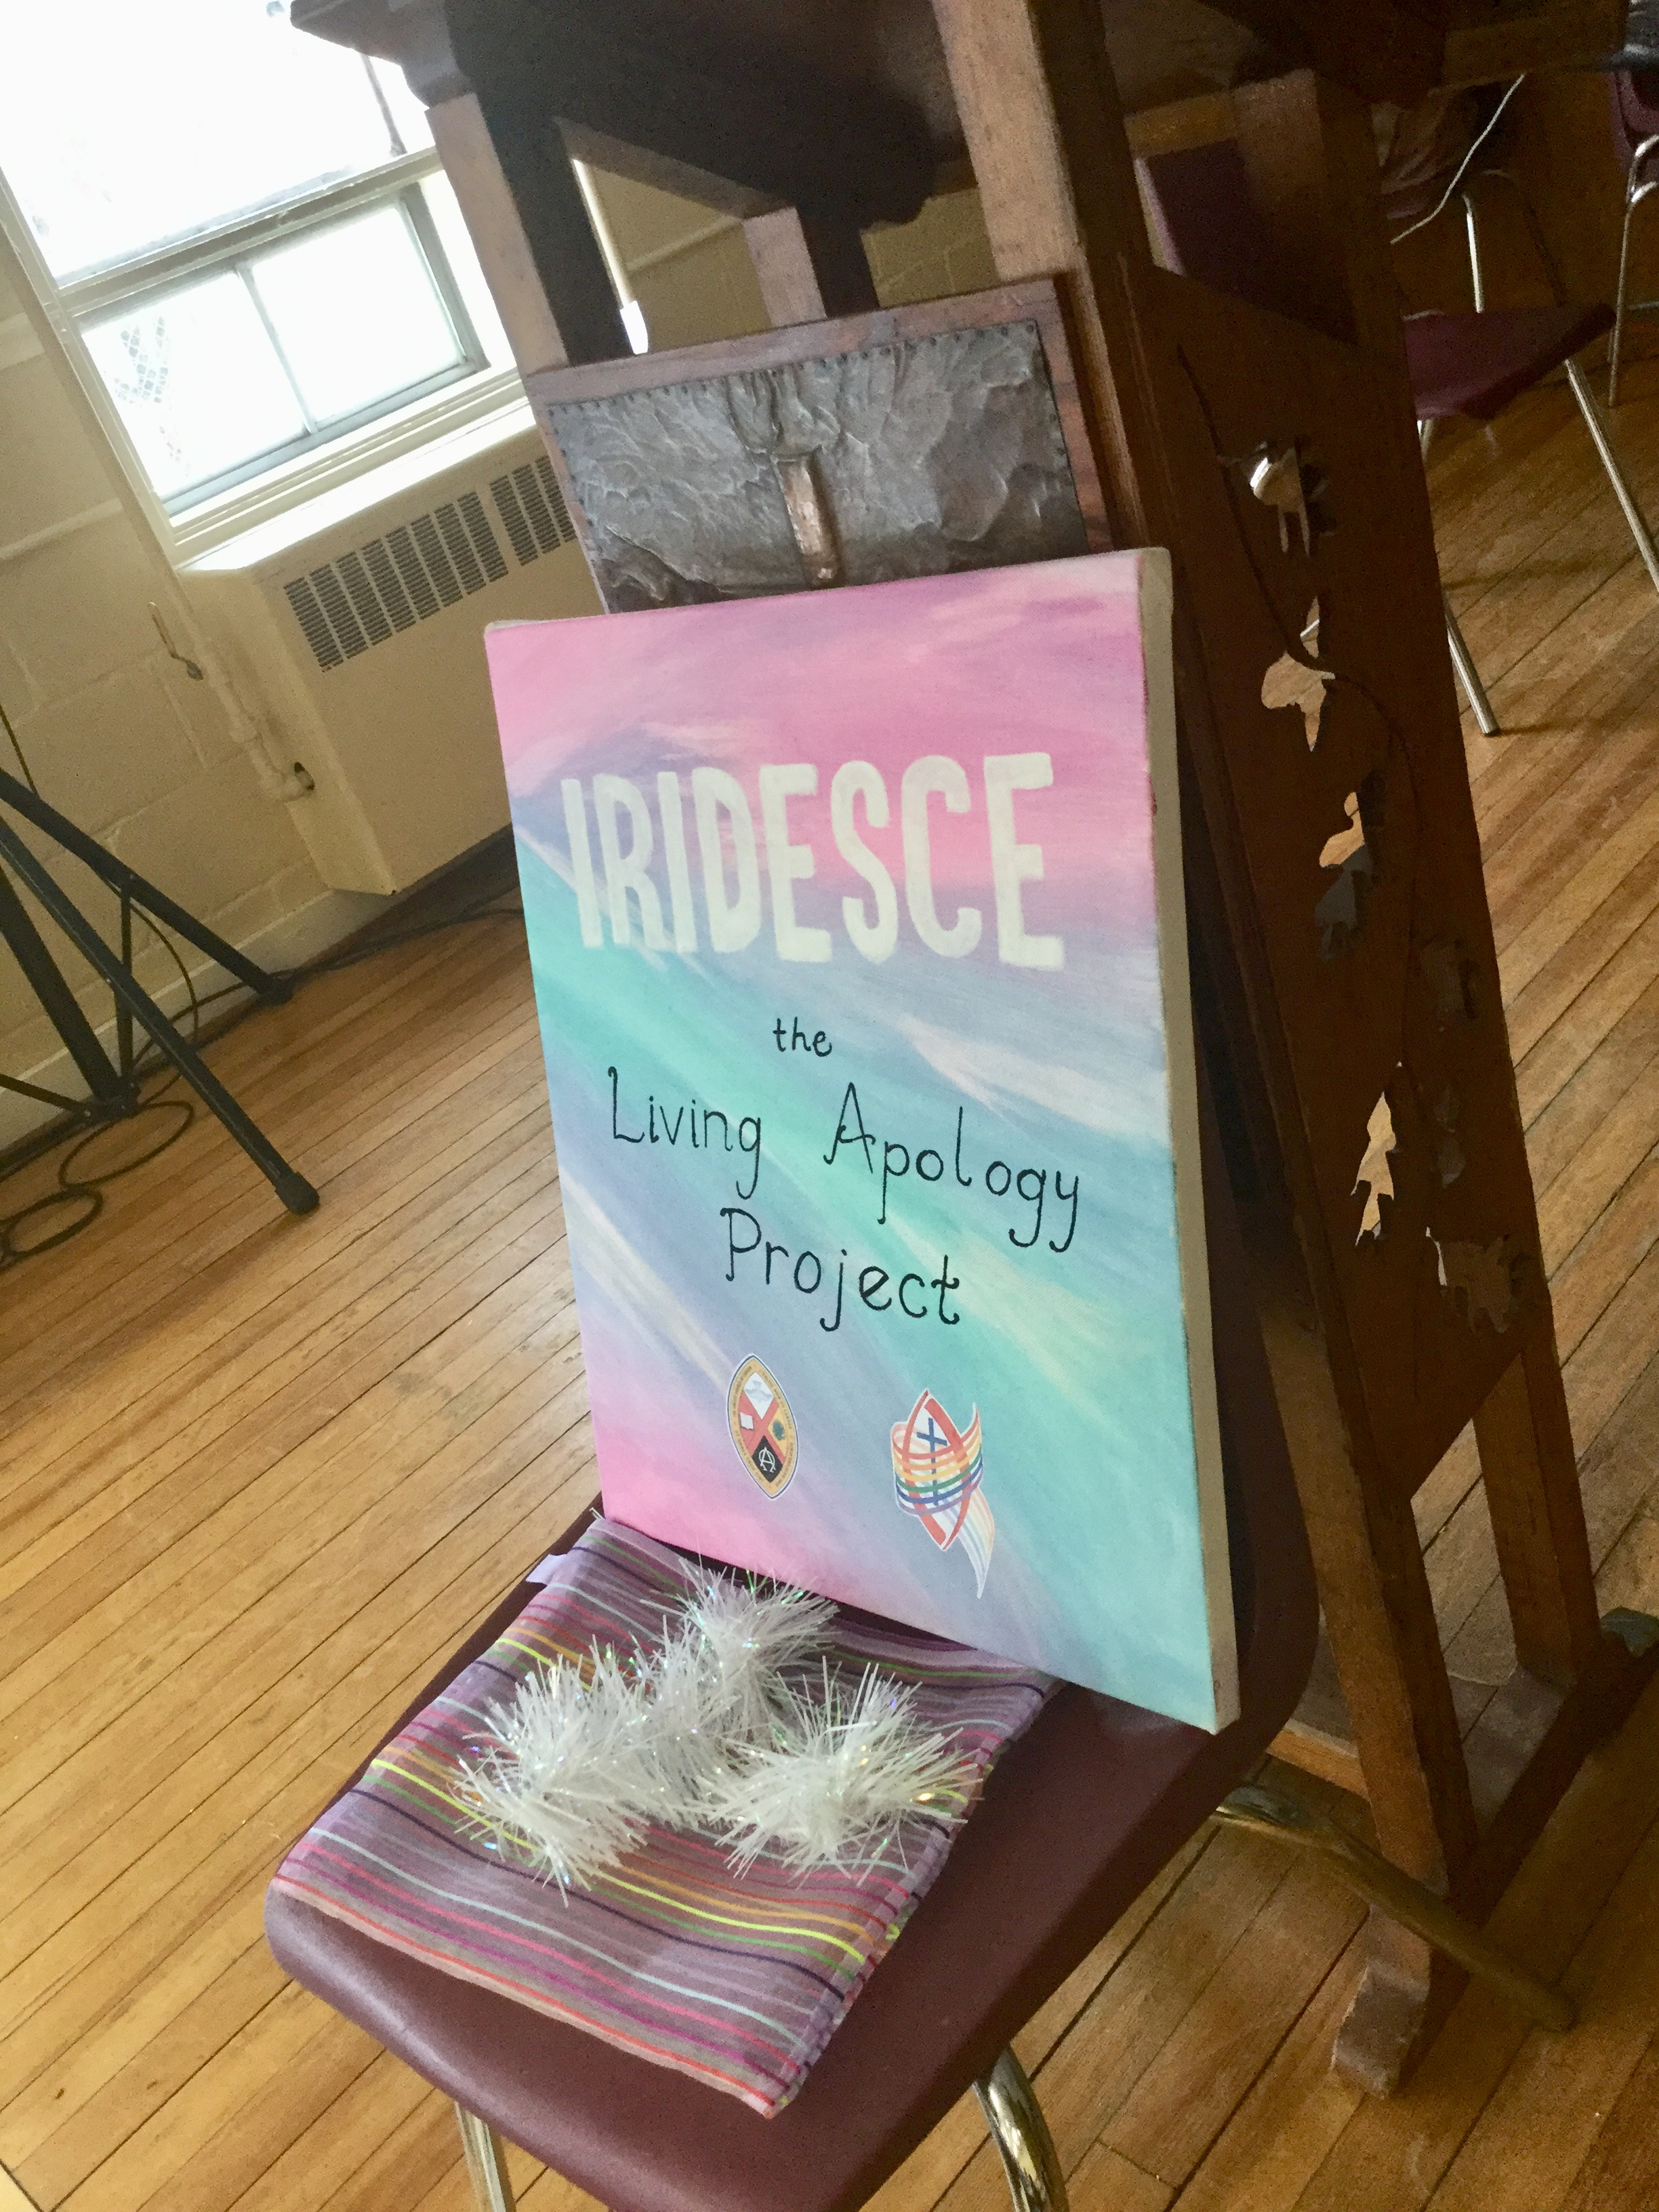 iridesce poster at youth forum